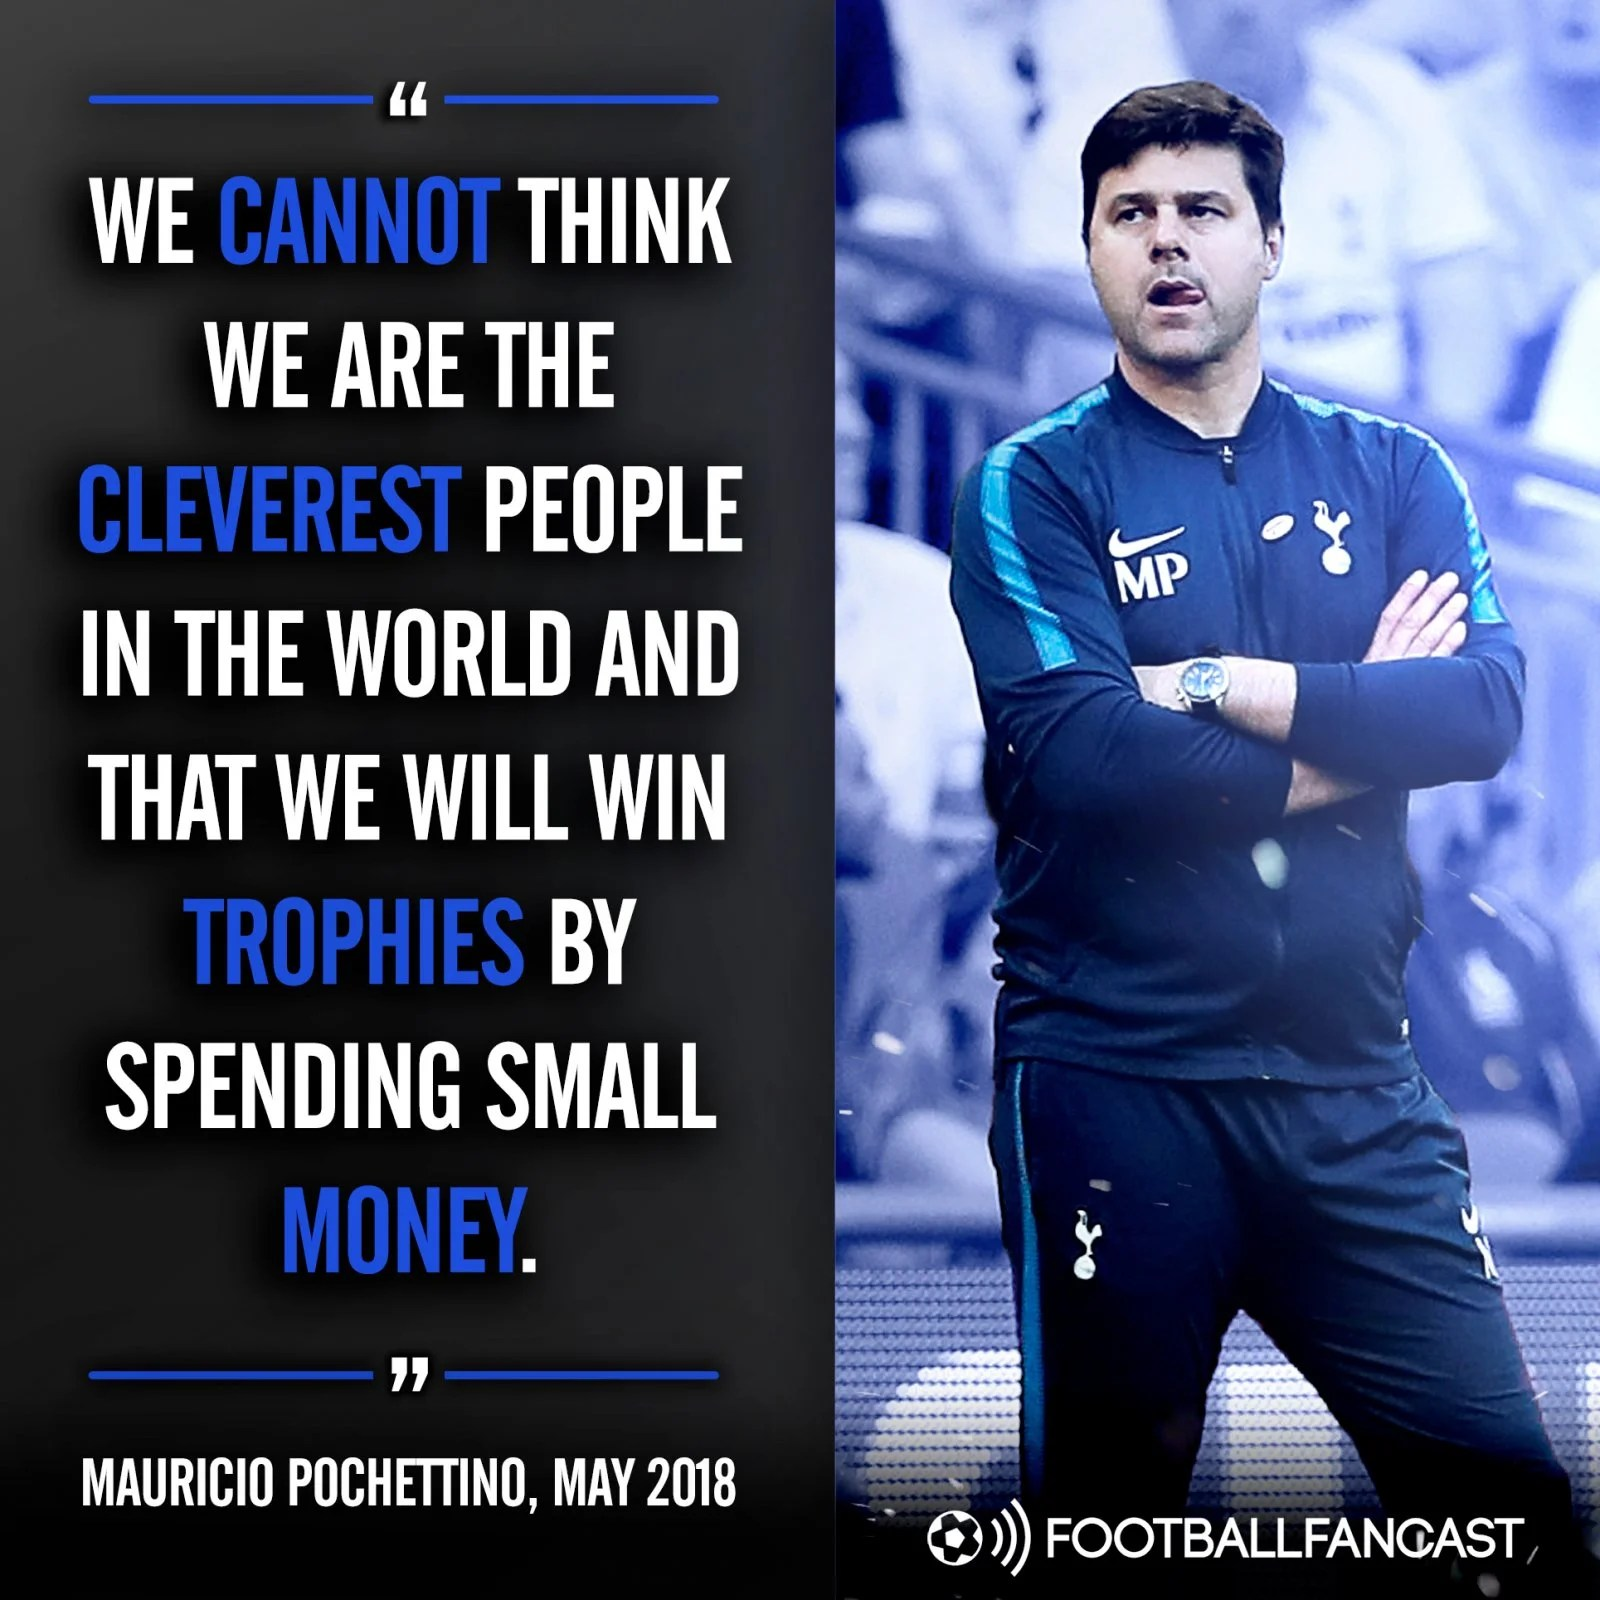 Mauricio Pochettino on Tottenham's spending habits